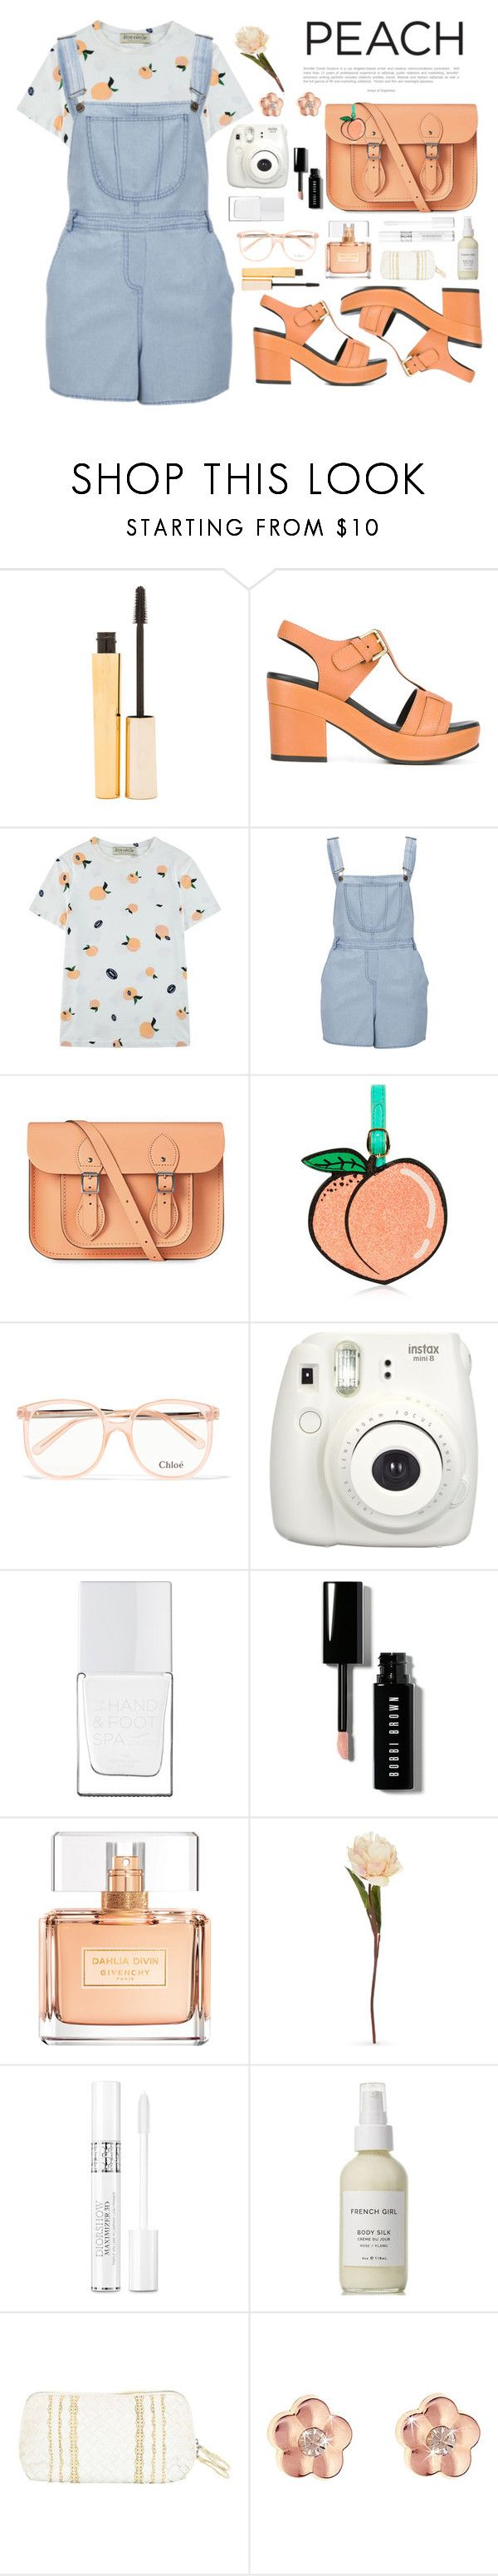 """""""Peachy"""" by jackicleaveland ❤ liked on Polyvore featuring Stila, Cotélac, Être Cécile, Influence, The Cambridge Satchel Company, Chloé, Fujifilm, The Hand & Foot Spa, Bobbi Brown Cosmetics and Givenchy"""